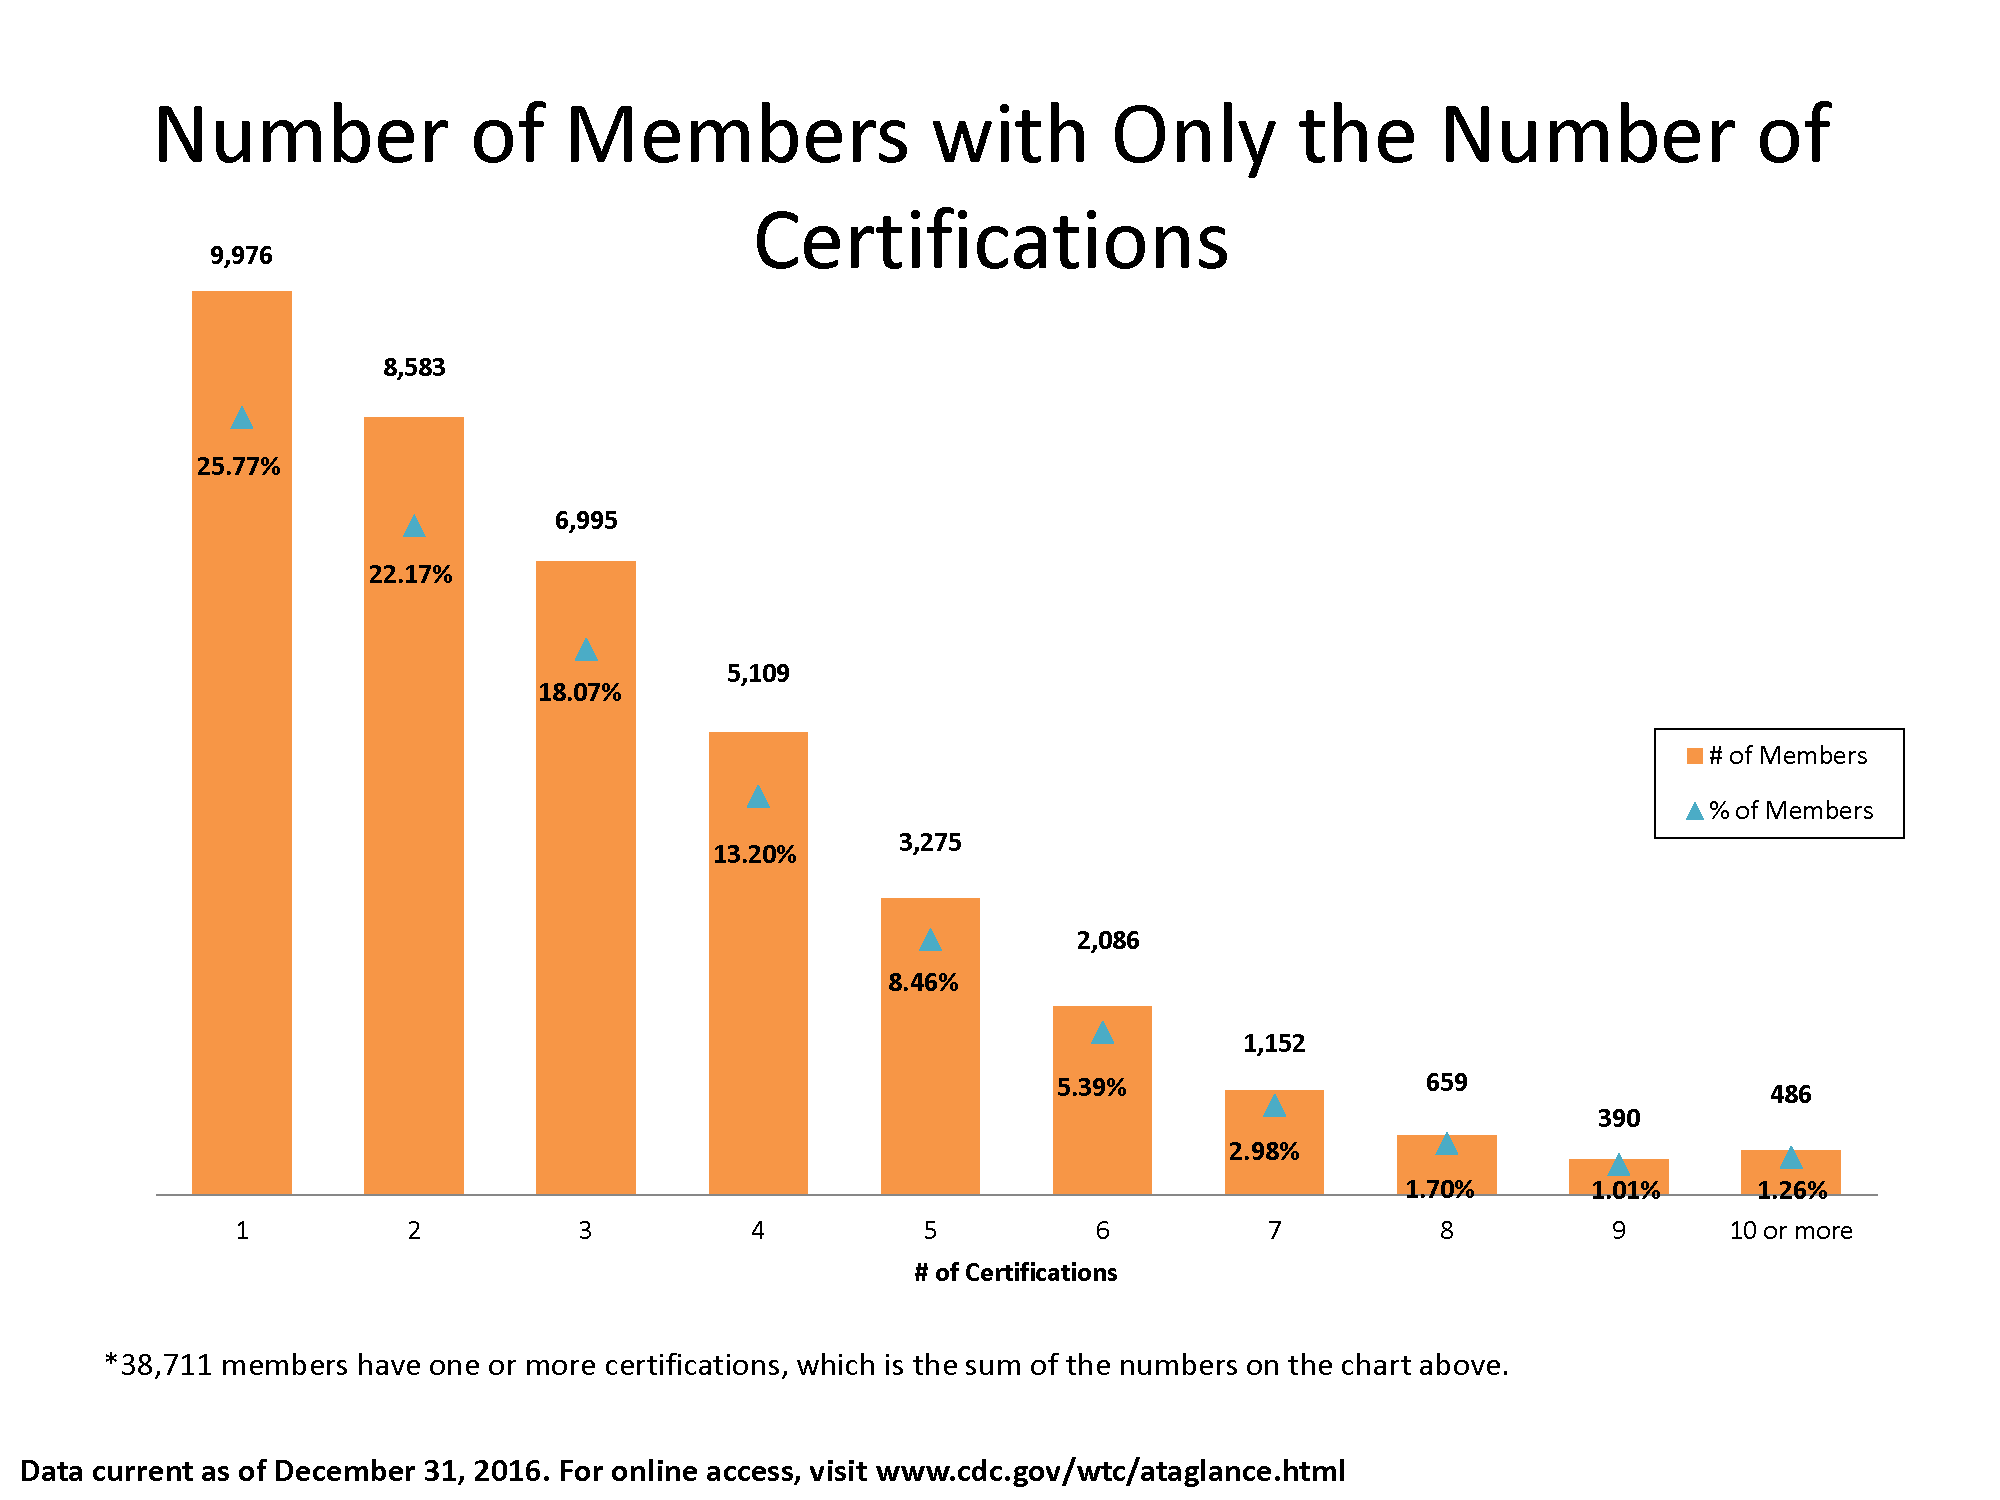 Bar chart showing the number of members with different numbers of certifications: